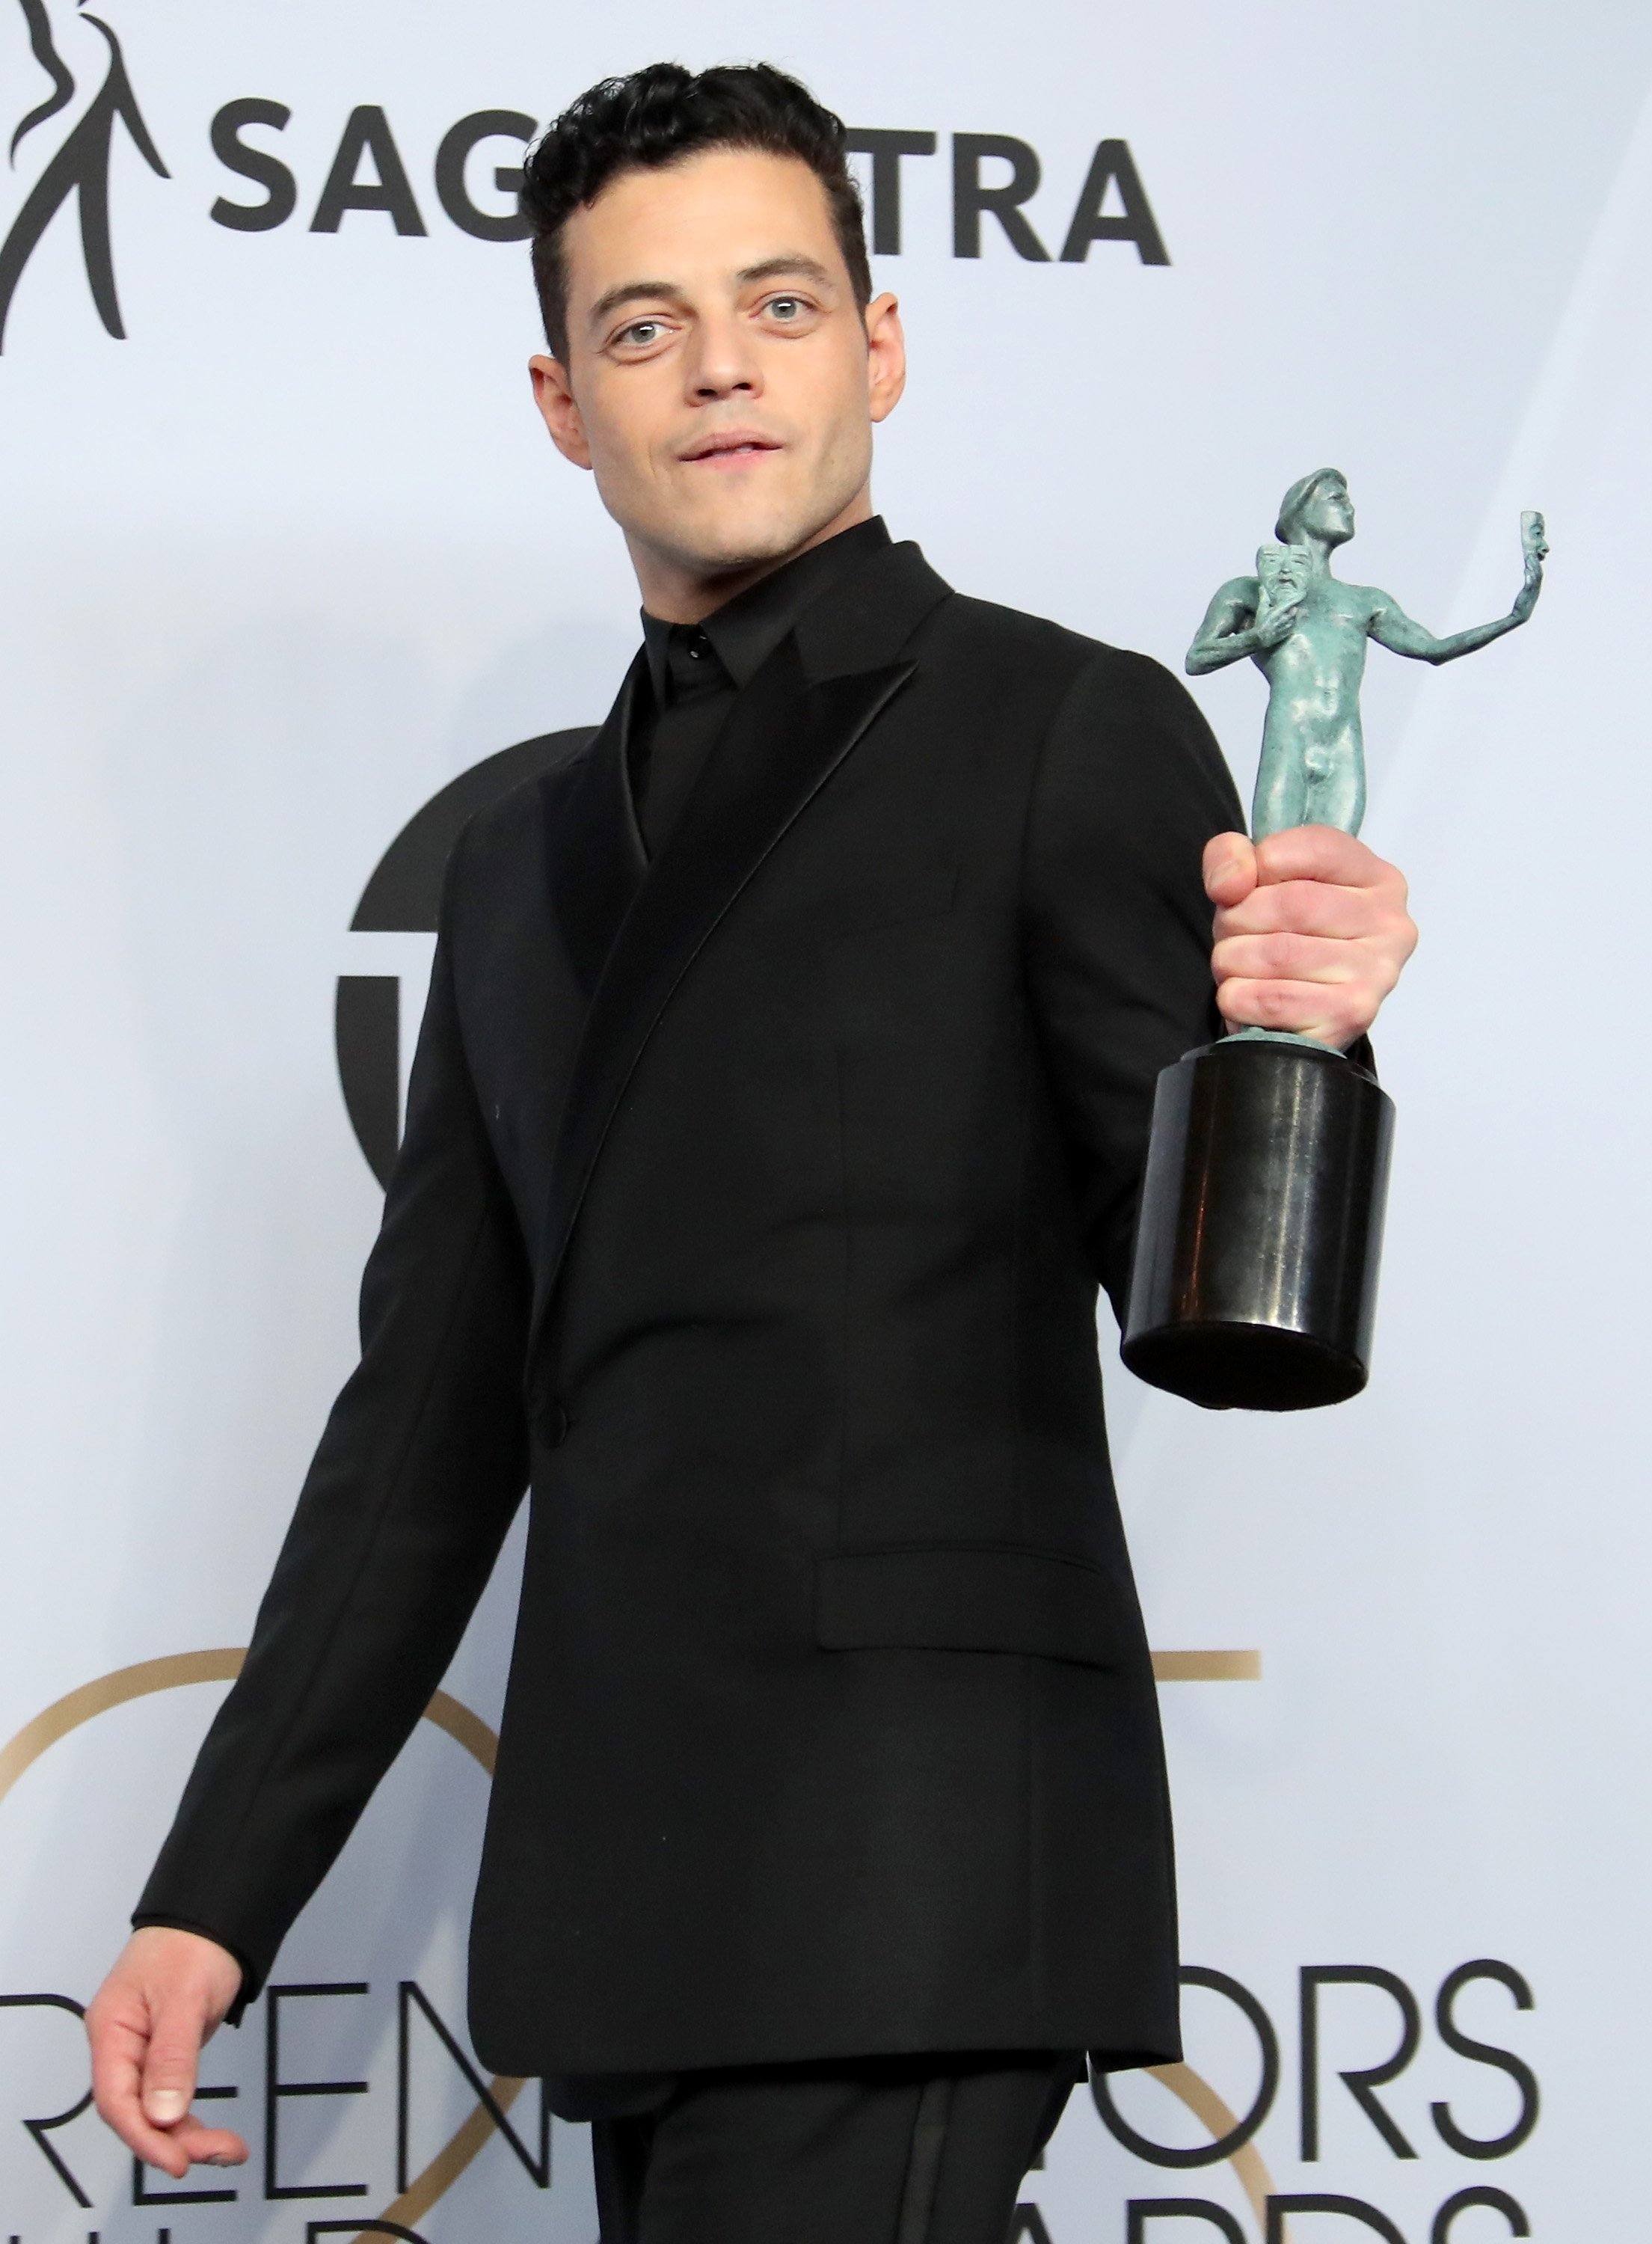 Rami Malek holds his award at the 25th Annual Screen Actors Guild Awards on January 27, 2019 in Los Angeles, California.   Photo: Getty Images